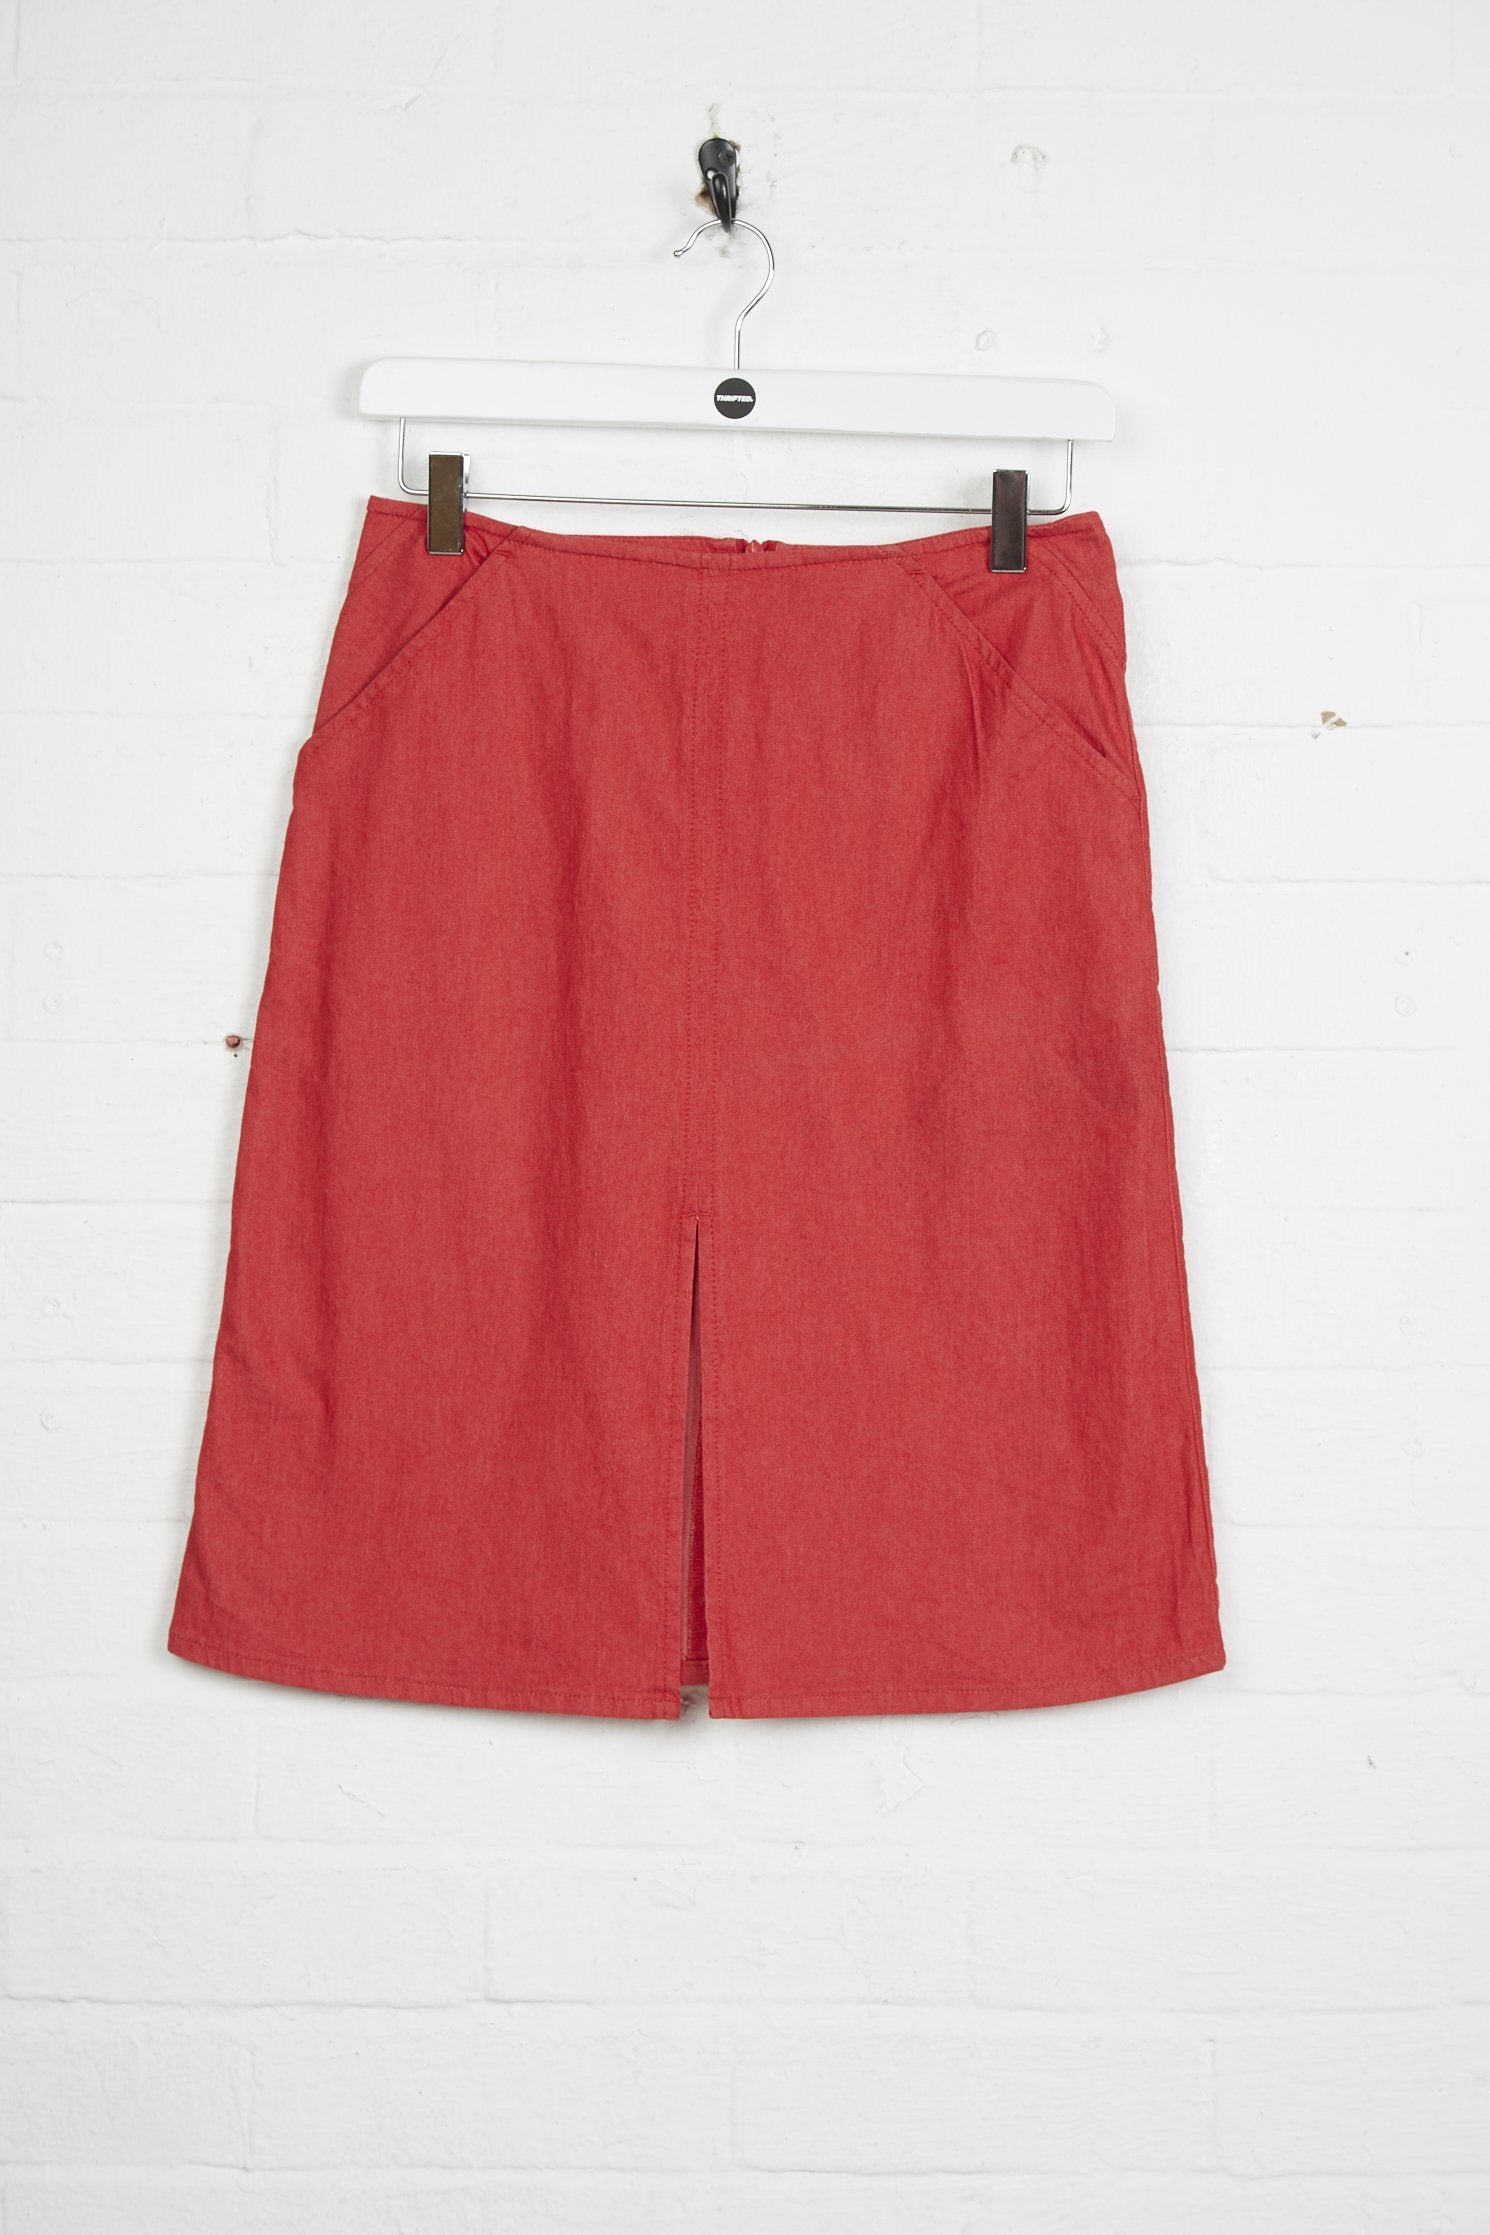 Vintage Armani Skirt - 2XS UK 2 Red Cotton - Thrifted.com